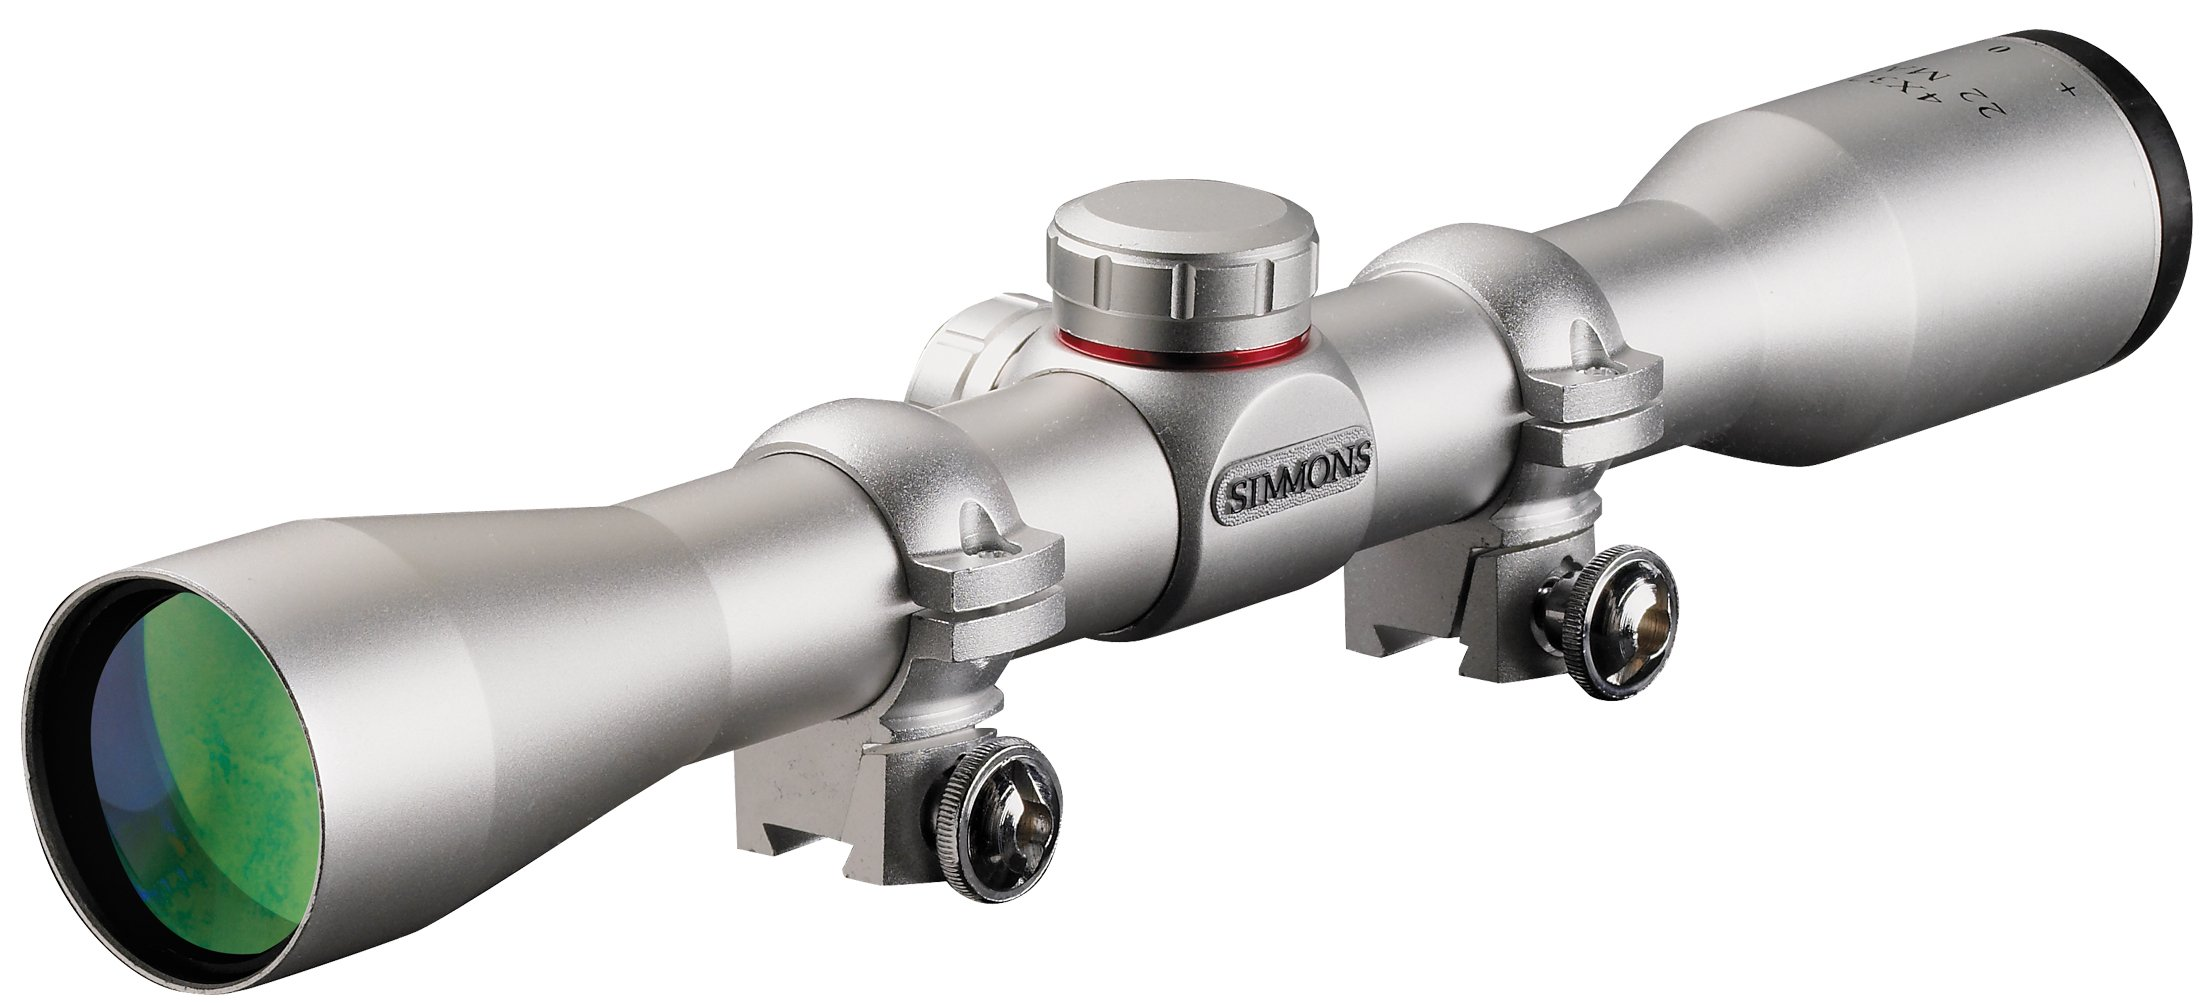 Simmons .22 Mag TruPlex Reticle Rimfire Riflescope with Rings, 4x32mm (Silver) by Simmons